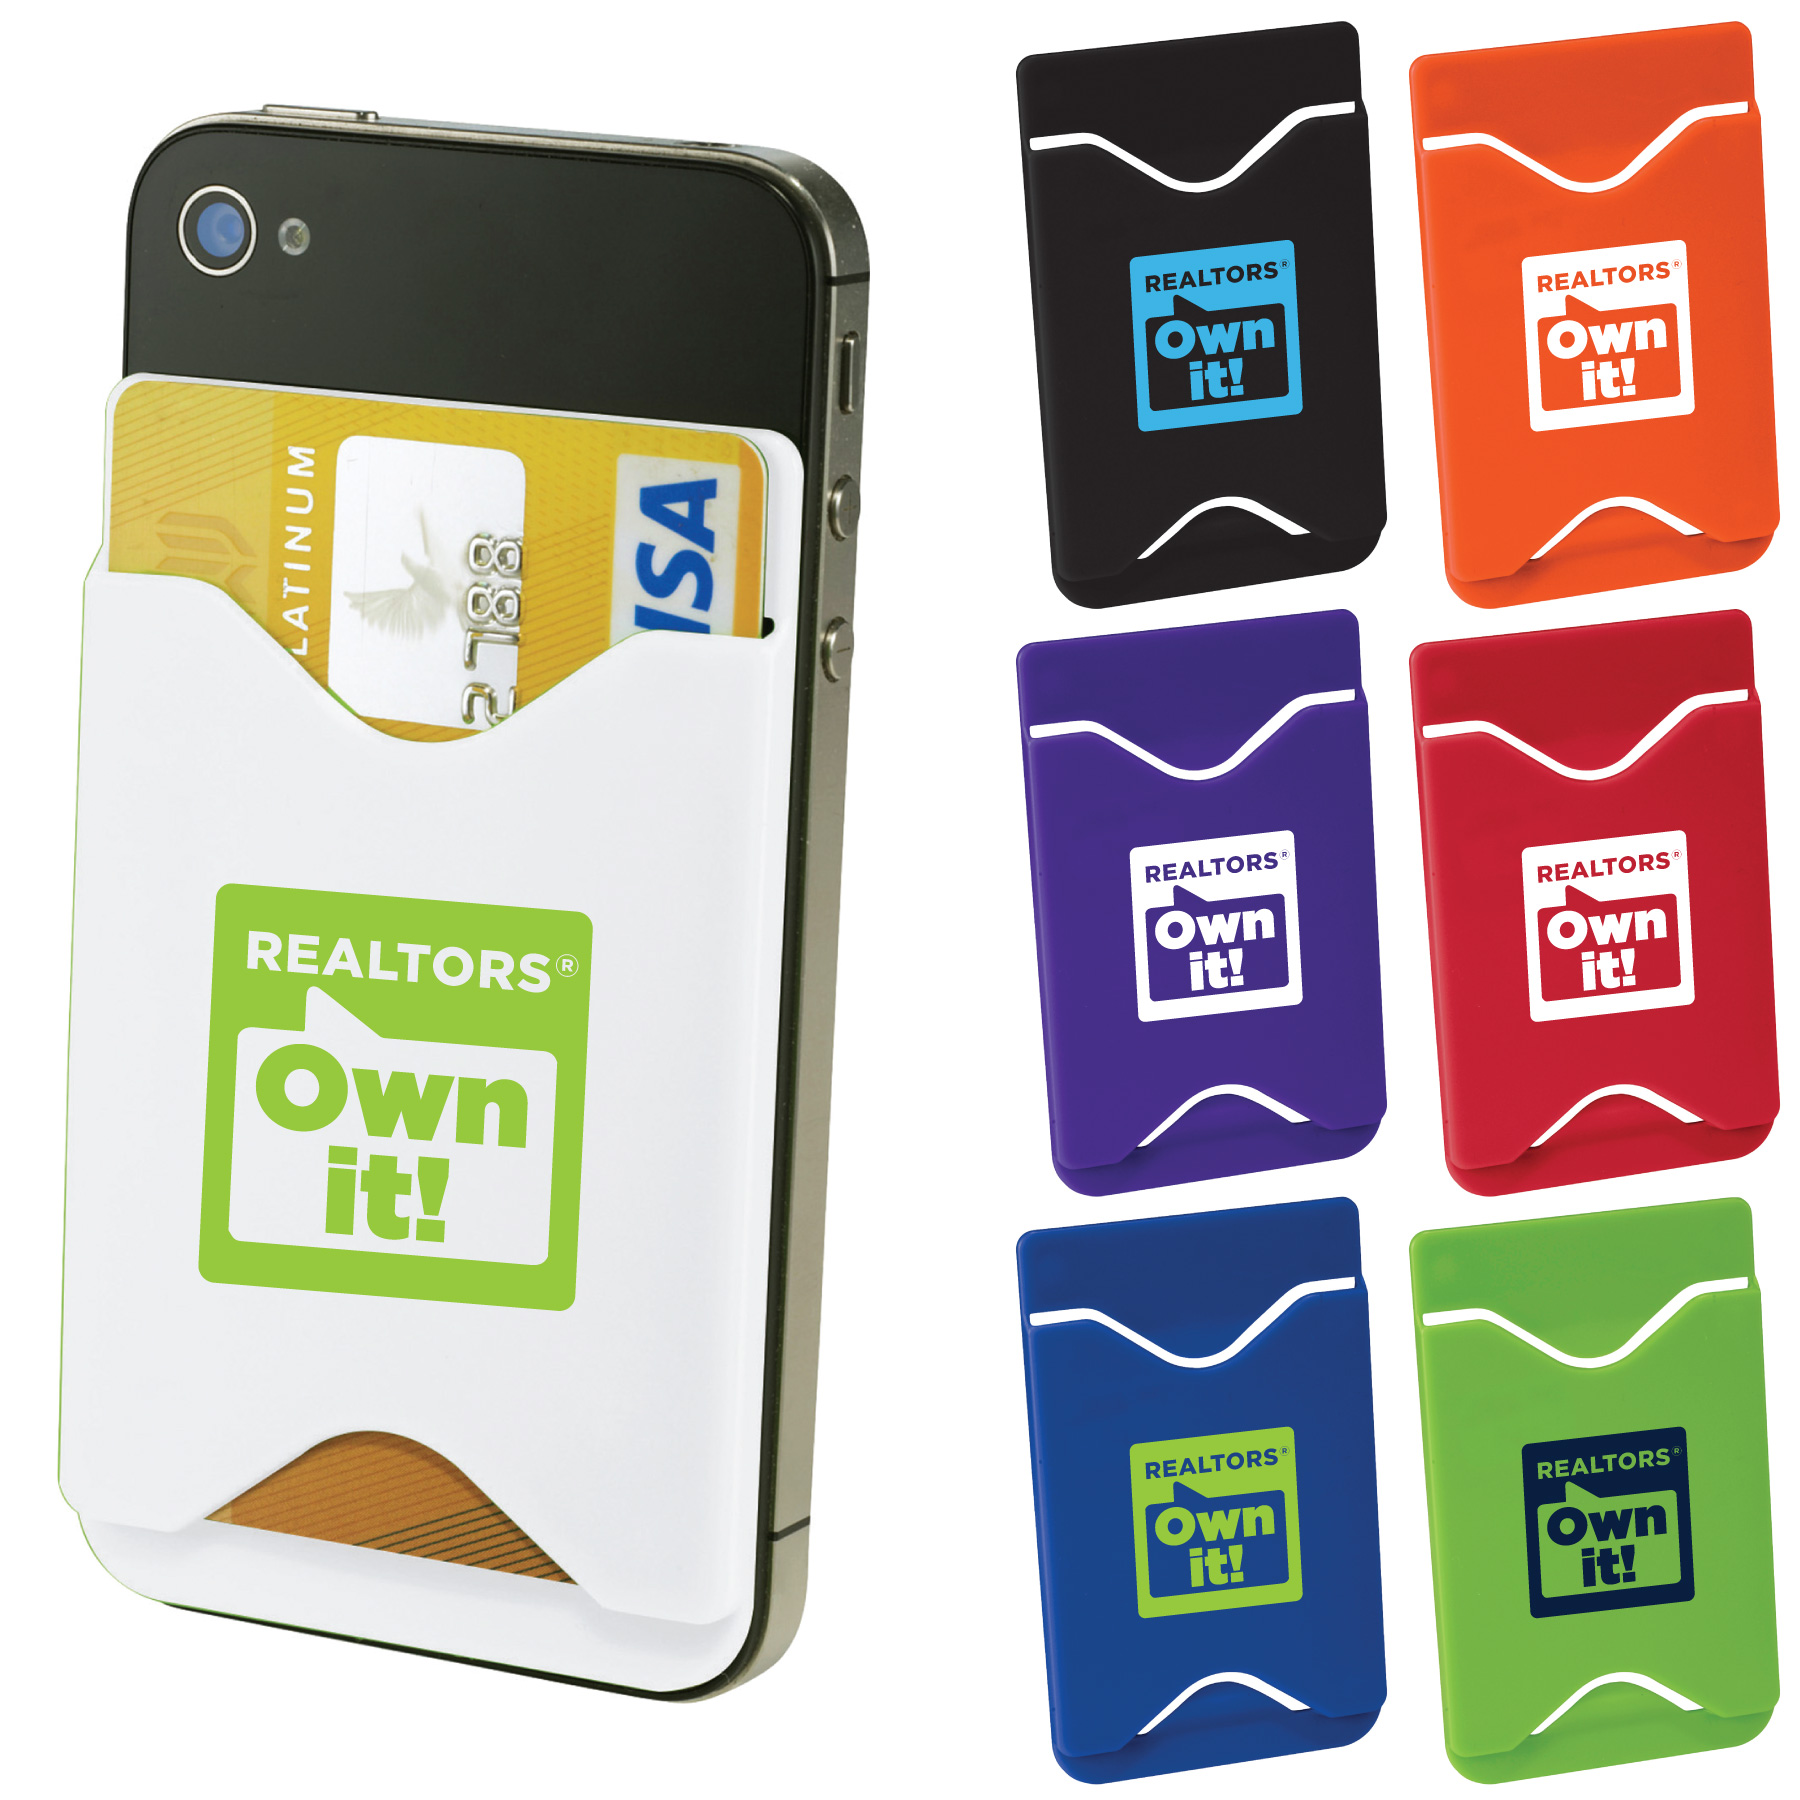 REALTORS® Own It! Cell Phone Card Holder (Special Order) Wallets,Cards,Cells,Phones,Holders,Pockets,Silicones,Plastic,Rubber,Holders